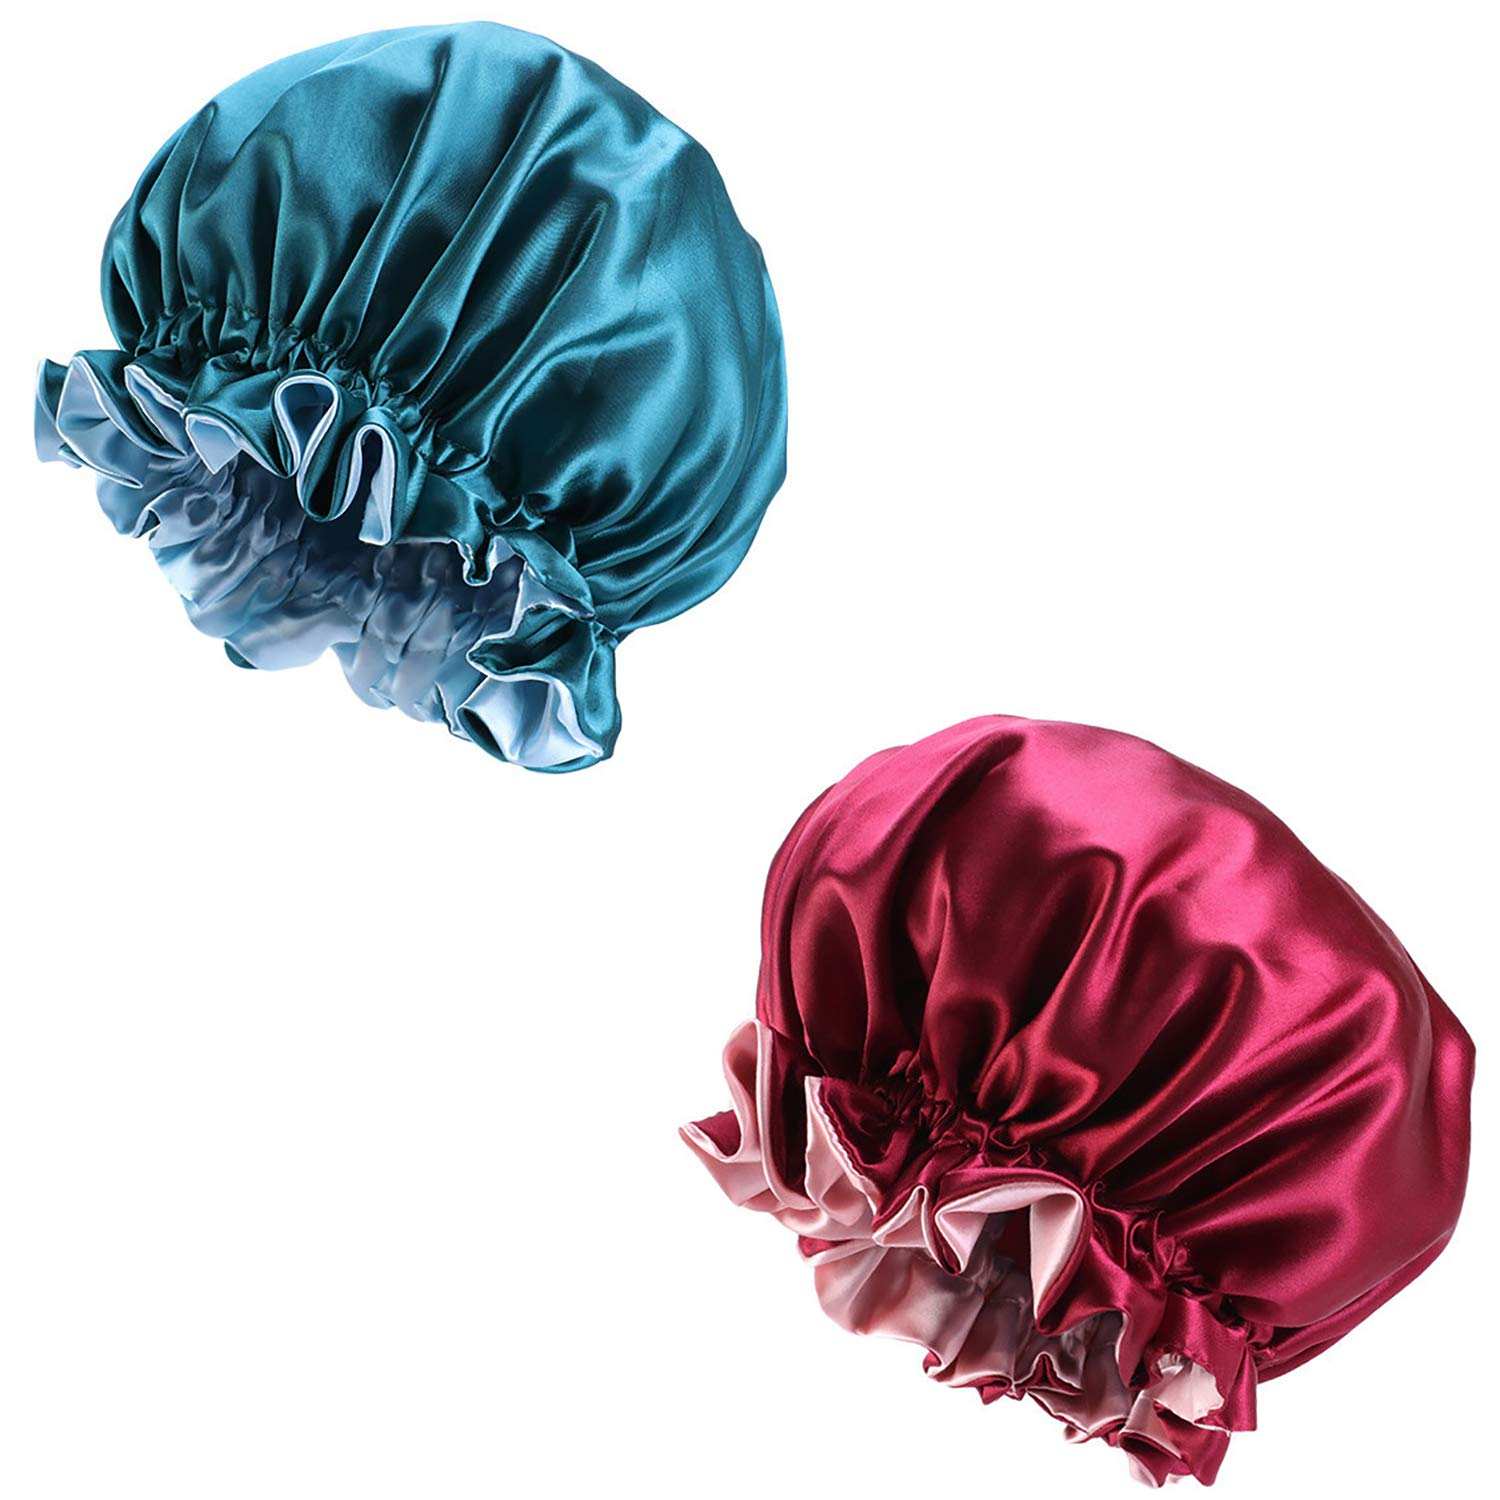 2 Pieces Satin Bonnet Double Layer Sleep Cap Silky Bonnet Cap for Women Haircare,Curly Natural Hair (X-Large, Hole Blue+Wine Red)